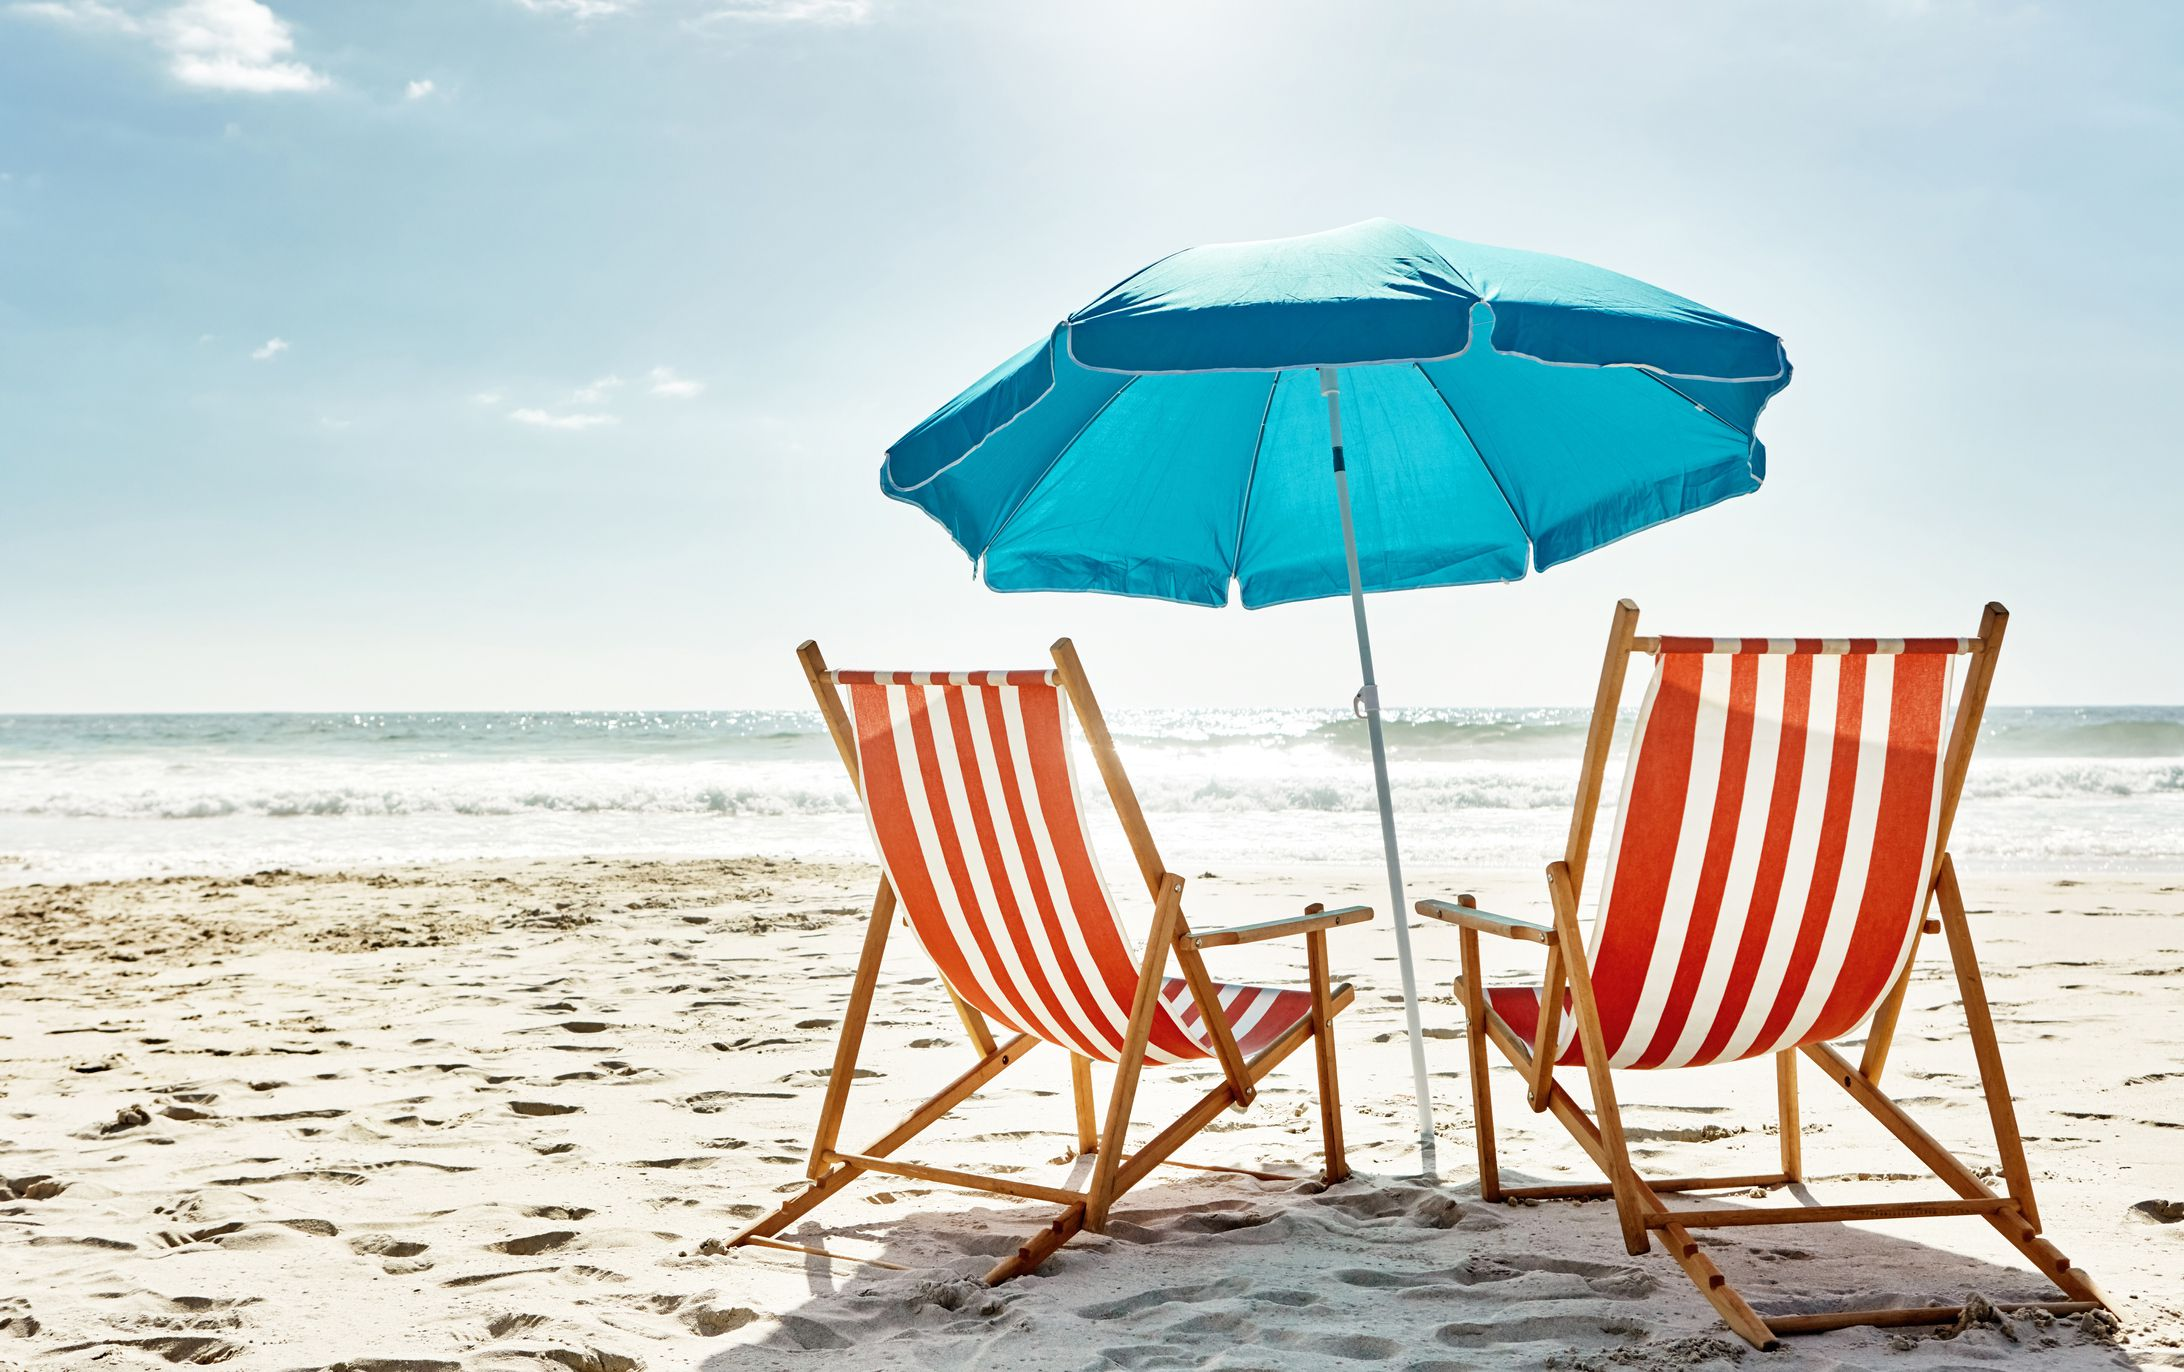 d5b1a3a291 The 8 Best Beach Chairs of 2019